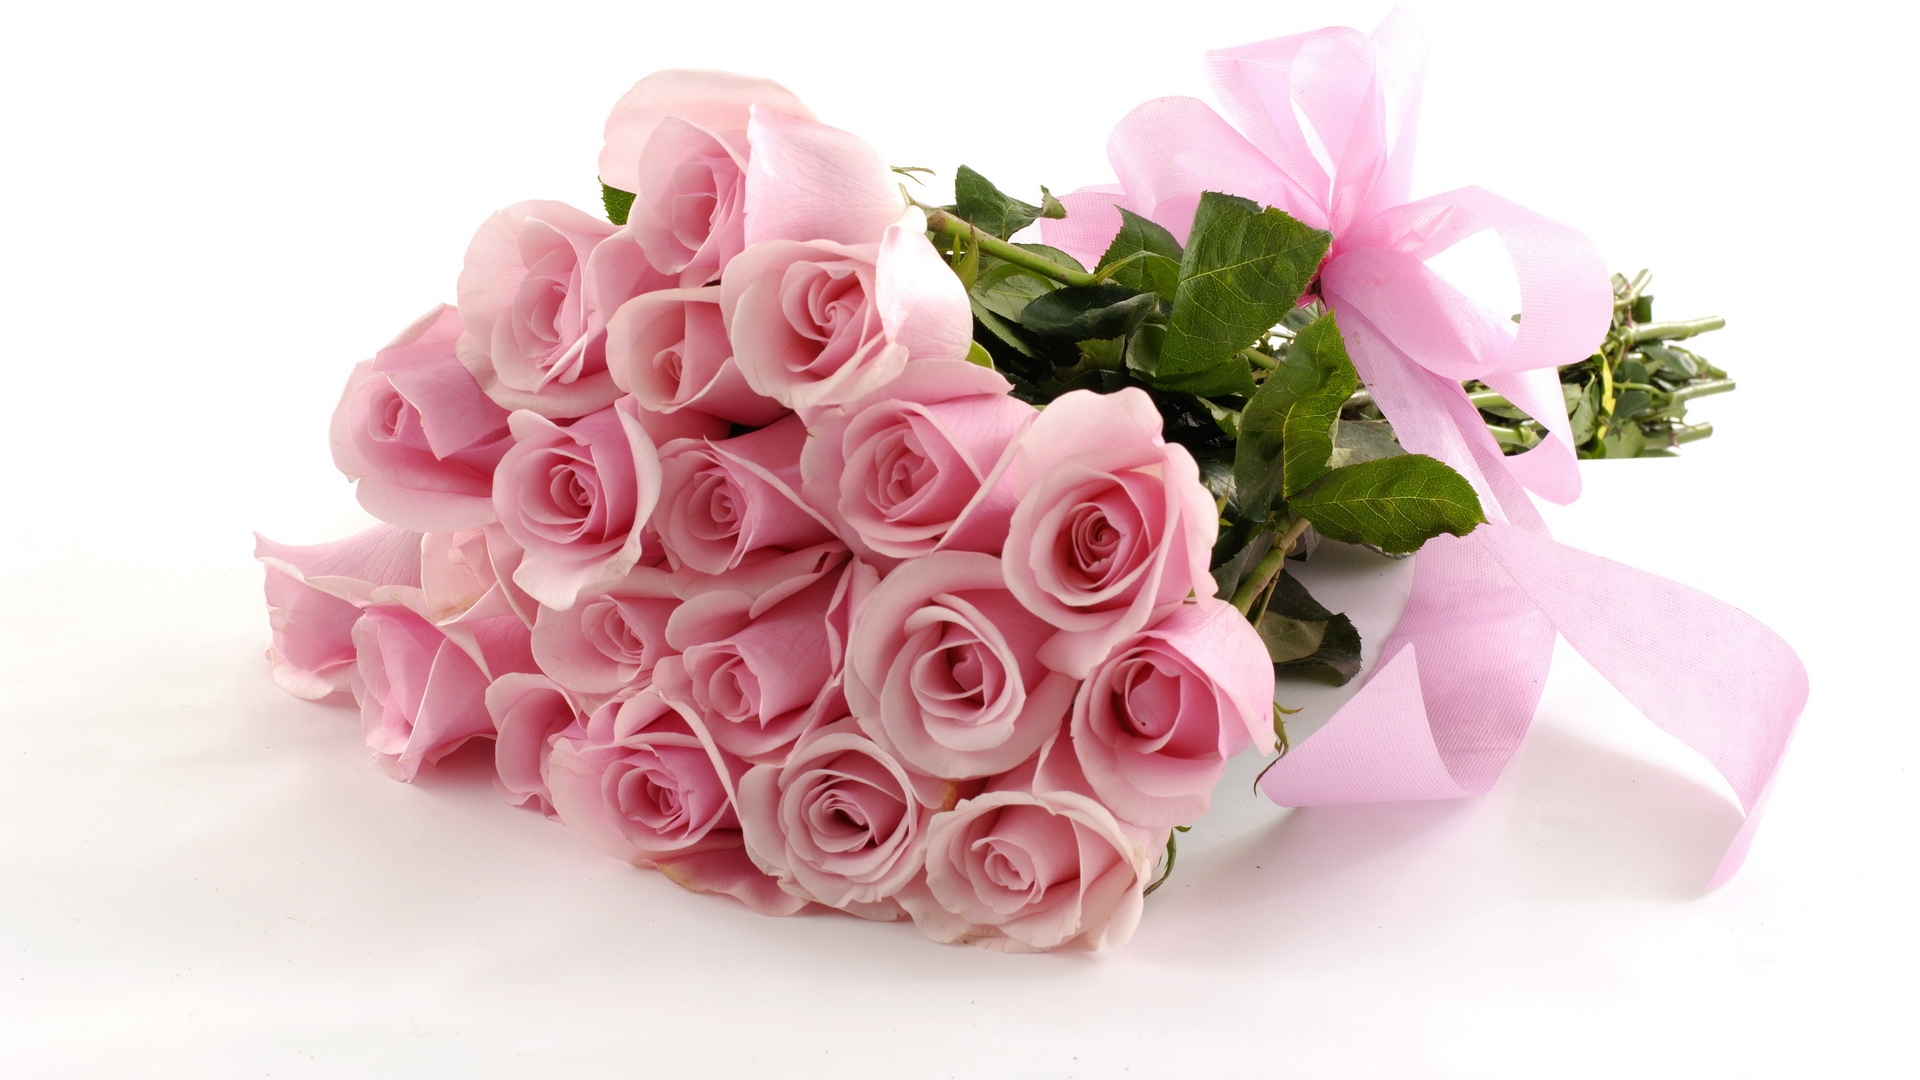 Саяногорск Инфо - holidays___international_womens_day_beautiful_pink_bouquet_as_a_gift_on_march_8_057093_.jpg, Скачано: 228